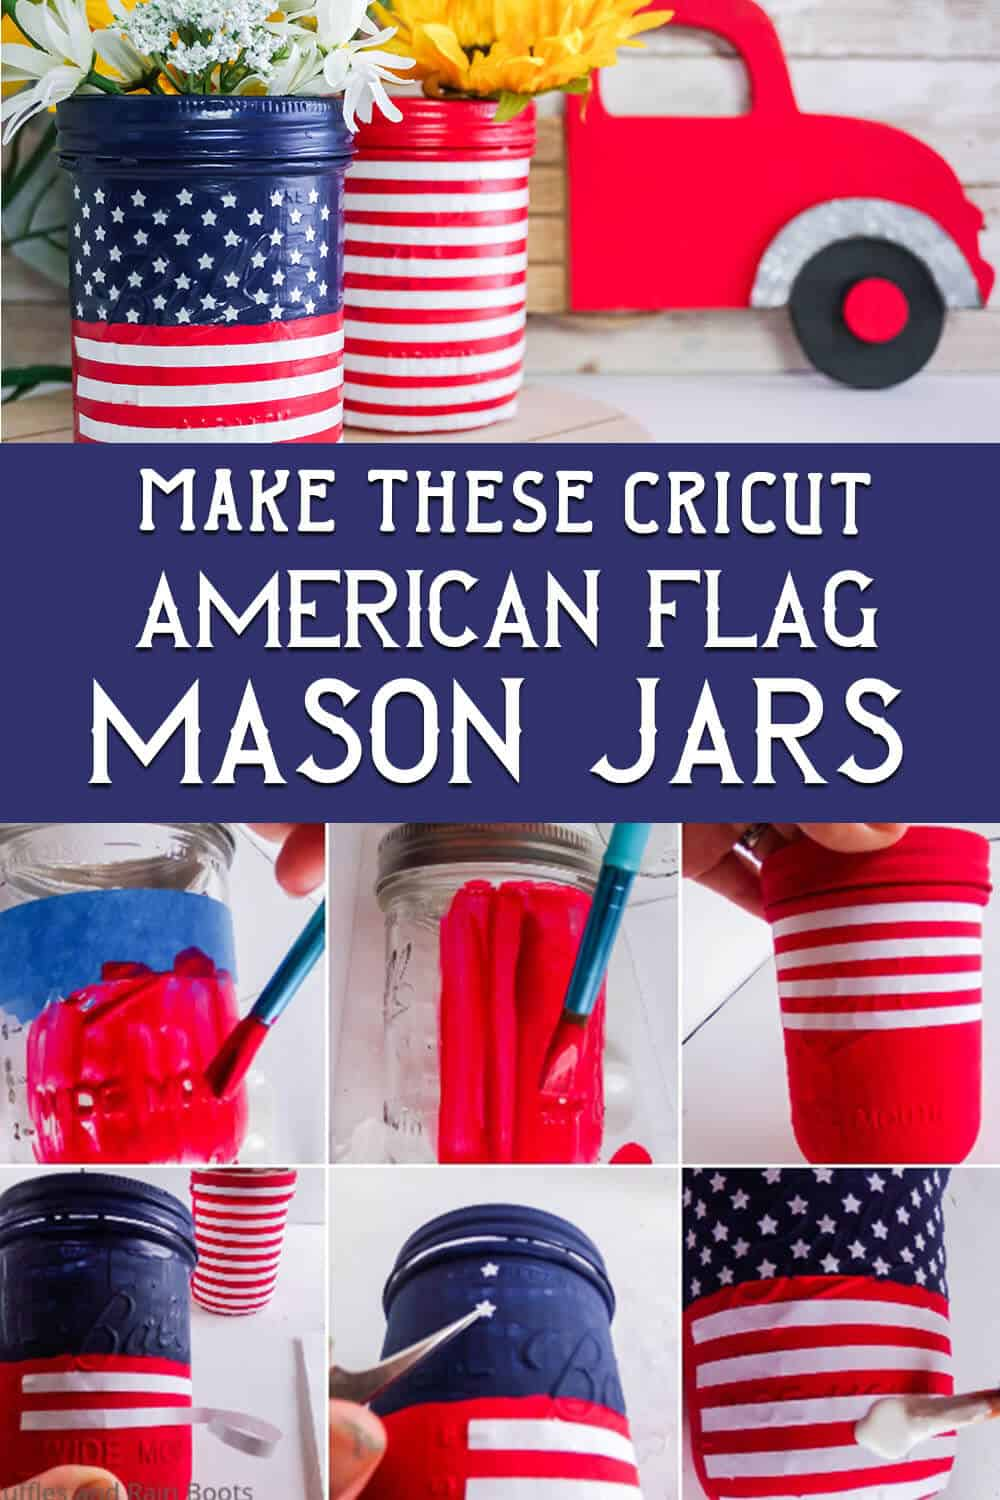 photo collage of how to make us flag mason jars with text make these cricut american flag mason jars